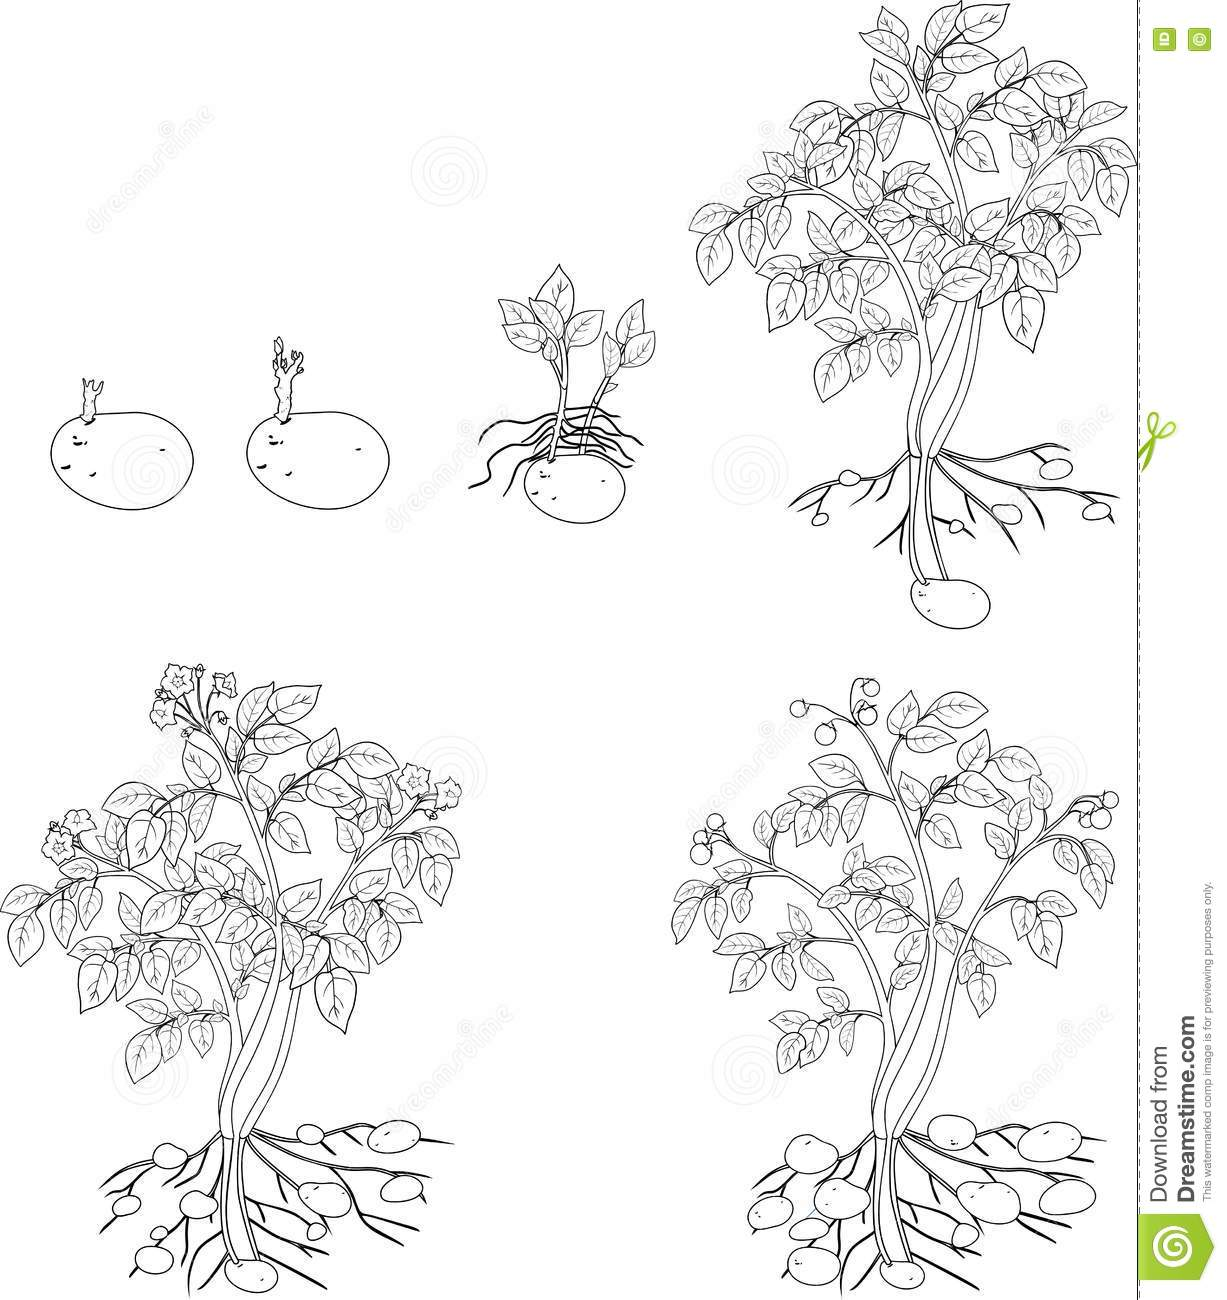 Coloring With Potato Plant Growth Cycle Cartoon Vector